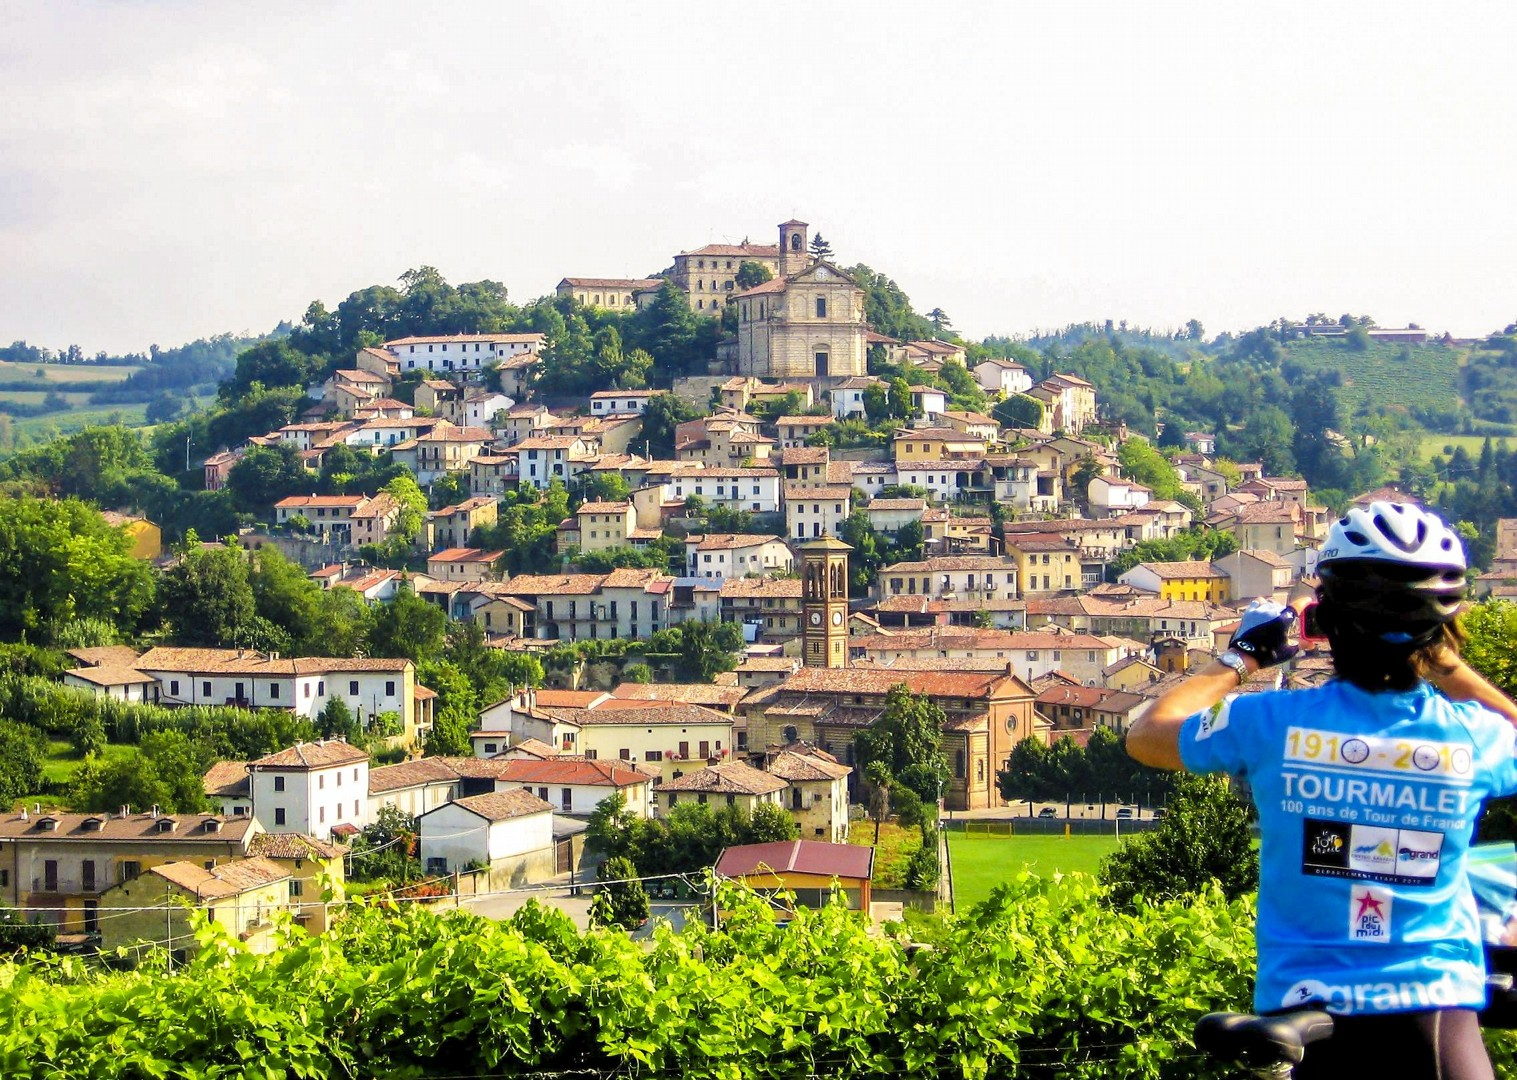 piedmont-italy-self-guided-cycling-culture-experience-agriturismo-accommodation.jpg - Italy - Piemonte - Vineyards and Views - Self-Guided Leisure Cycling Holiday - Leisure Cycling